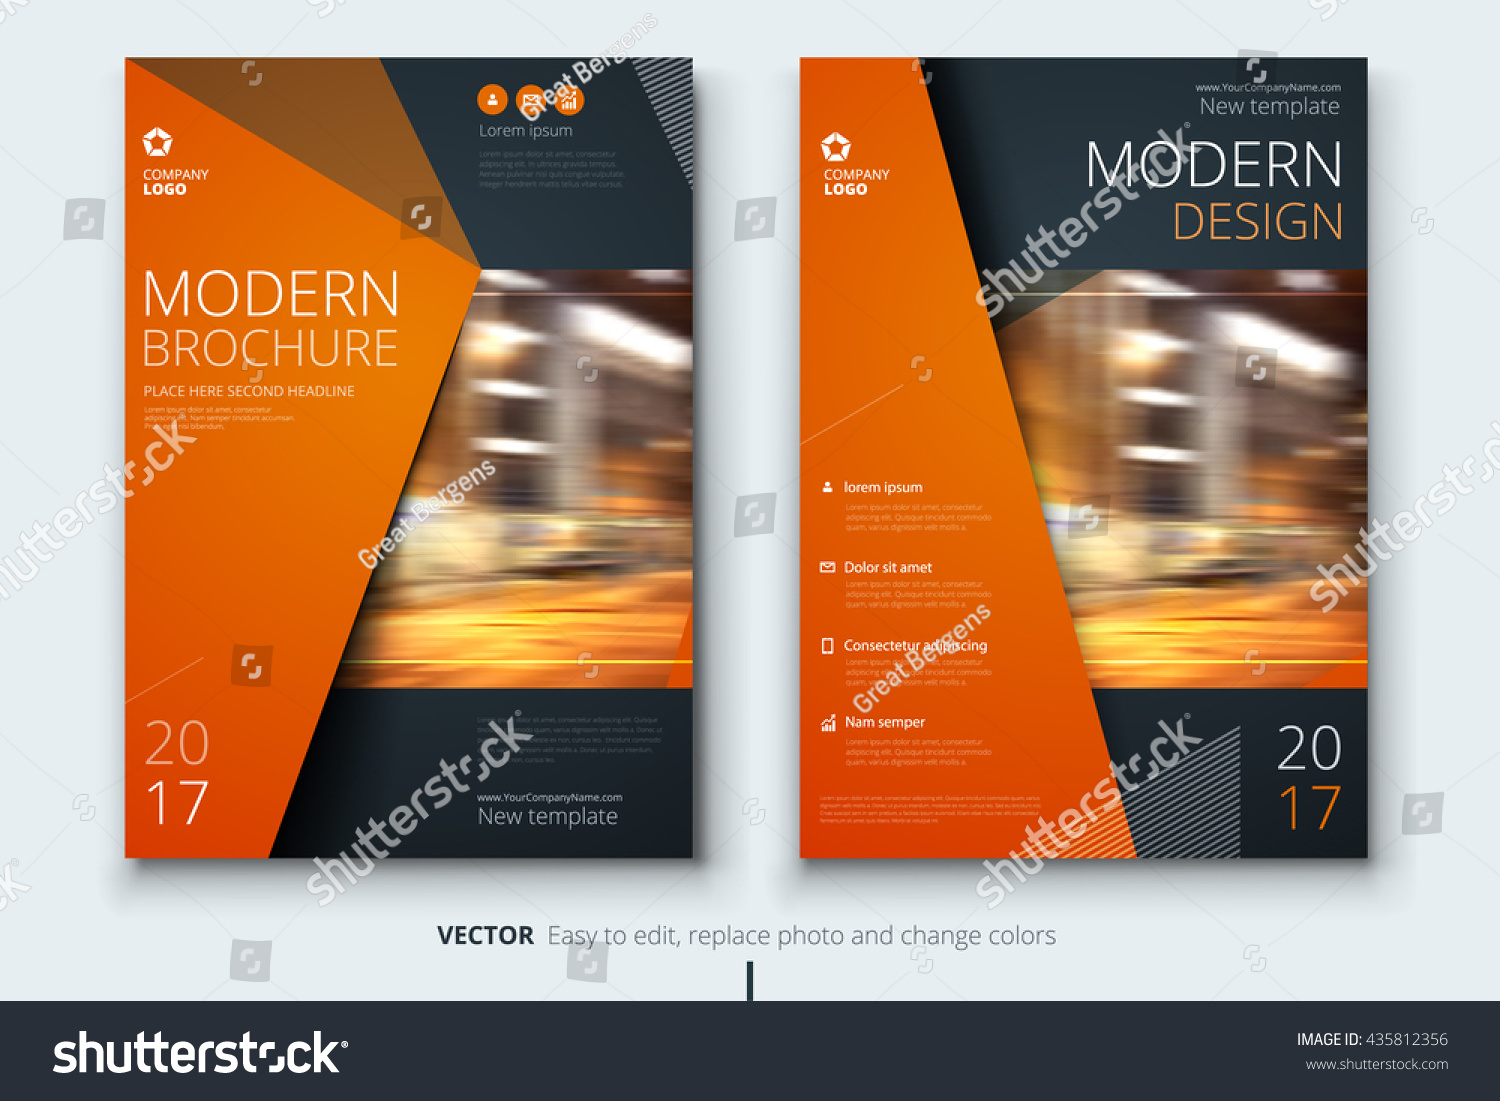 brochure modern design - brochure template layout design corporate business stock